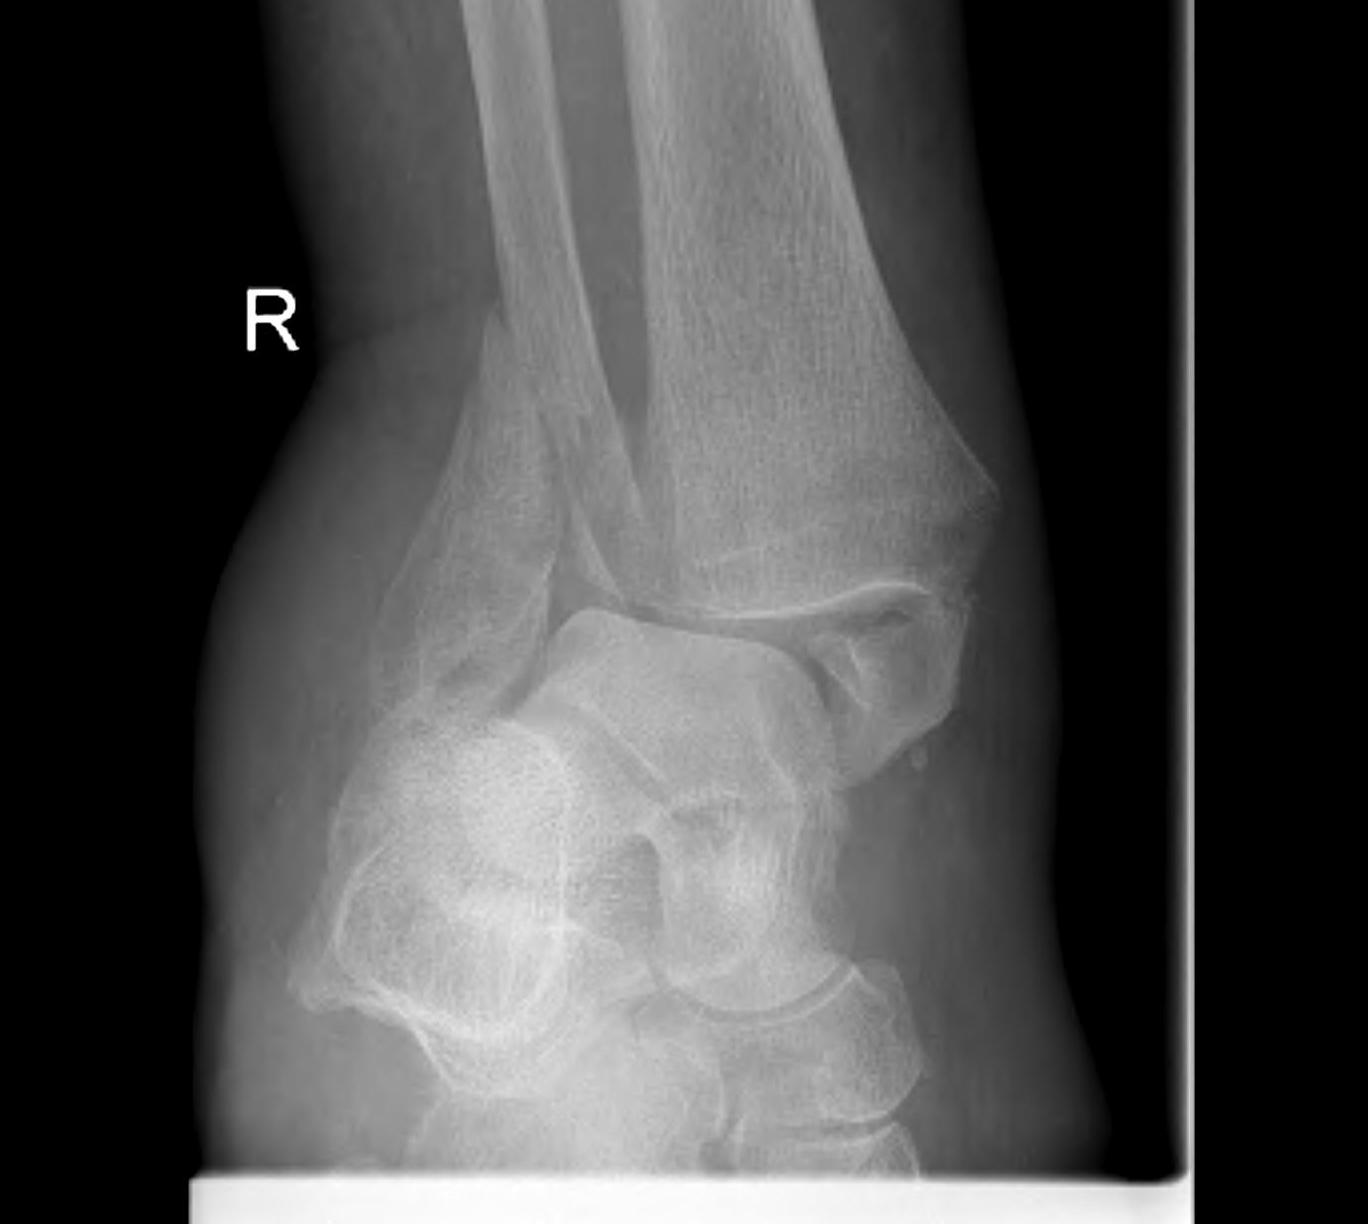 Ankle Fracture Osteoporotic